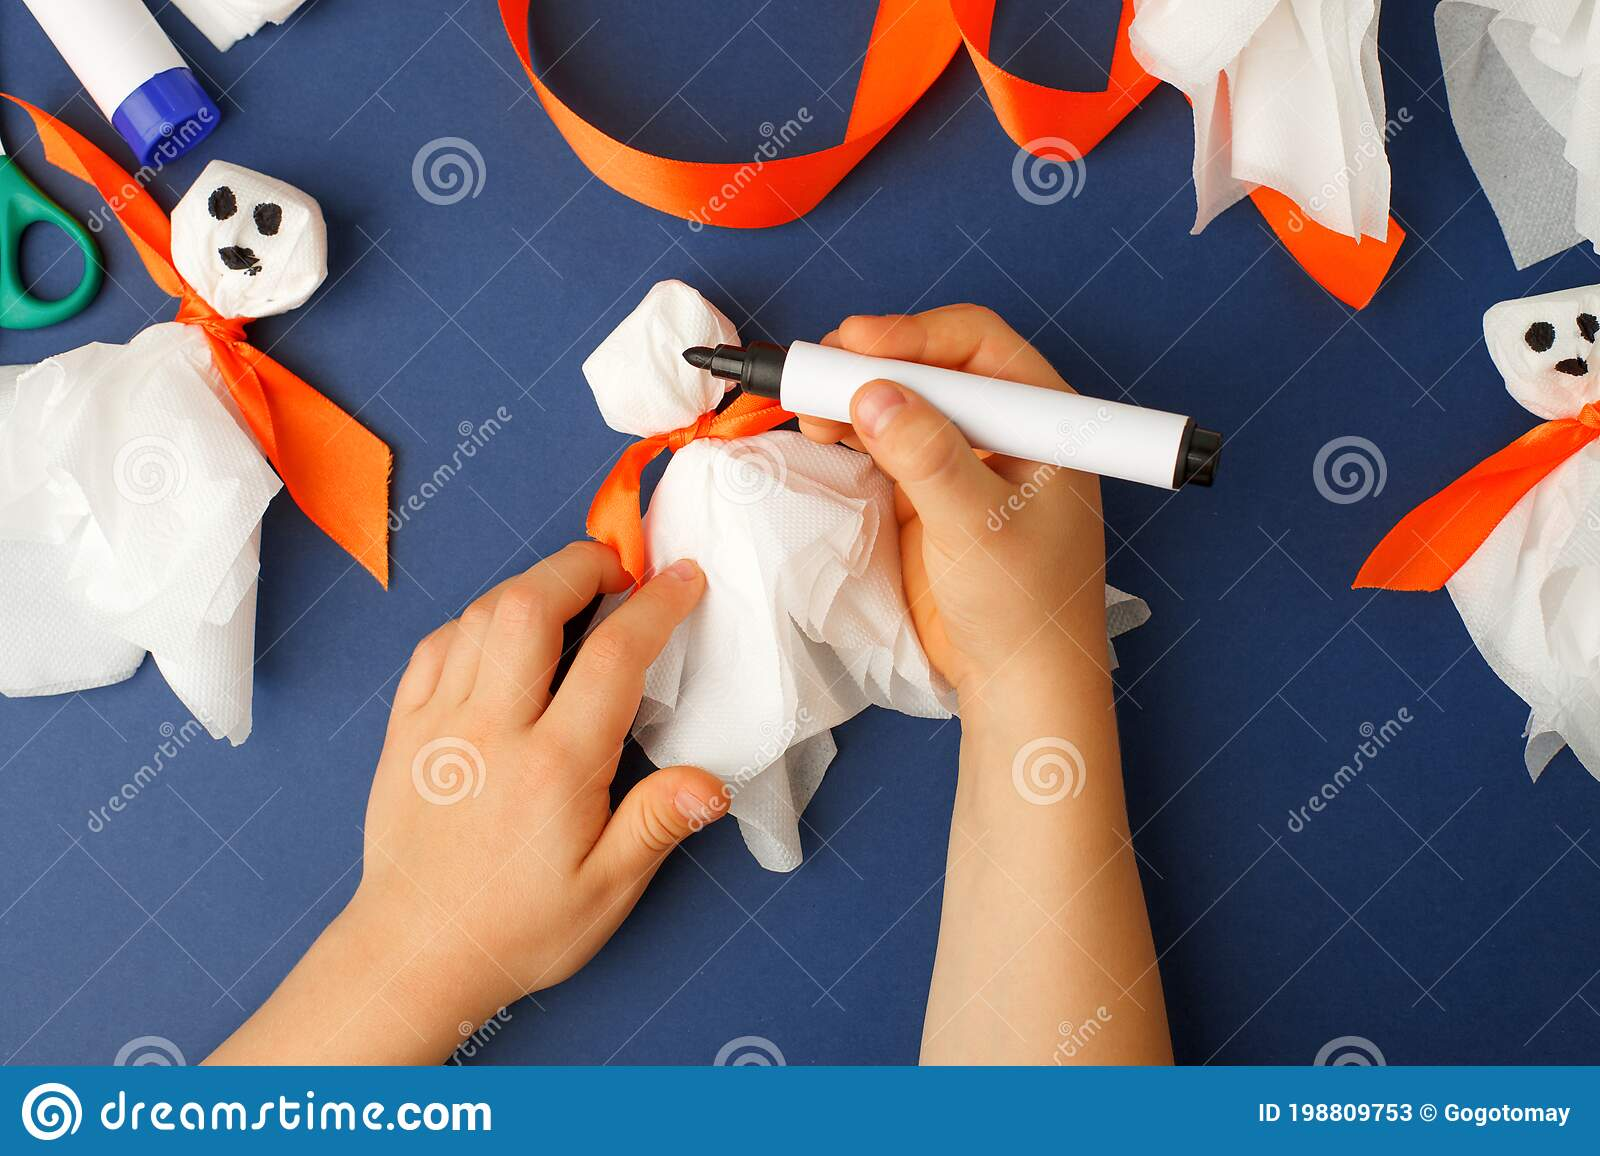 Boy Makes Halloween Toys Ghost From White Paper Napkin Creative Diy For Kids On Classic Blue Background Home Decor Project Party Stock Image Image Of Creativity Handcraft 198809753